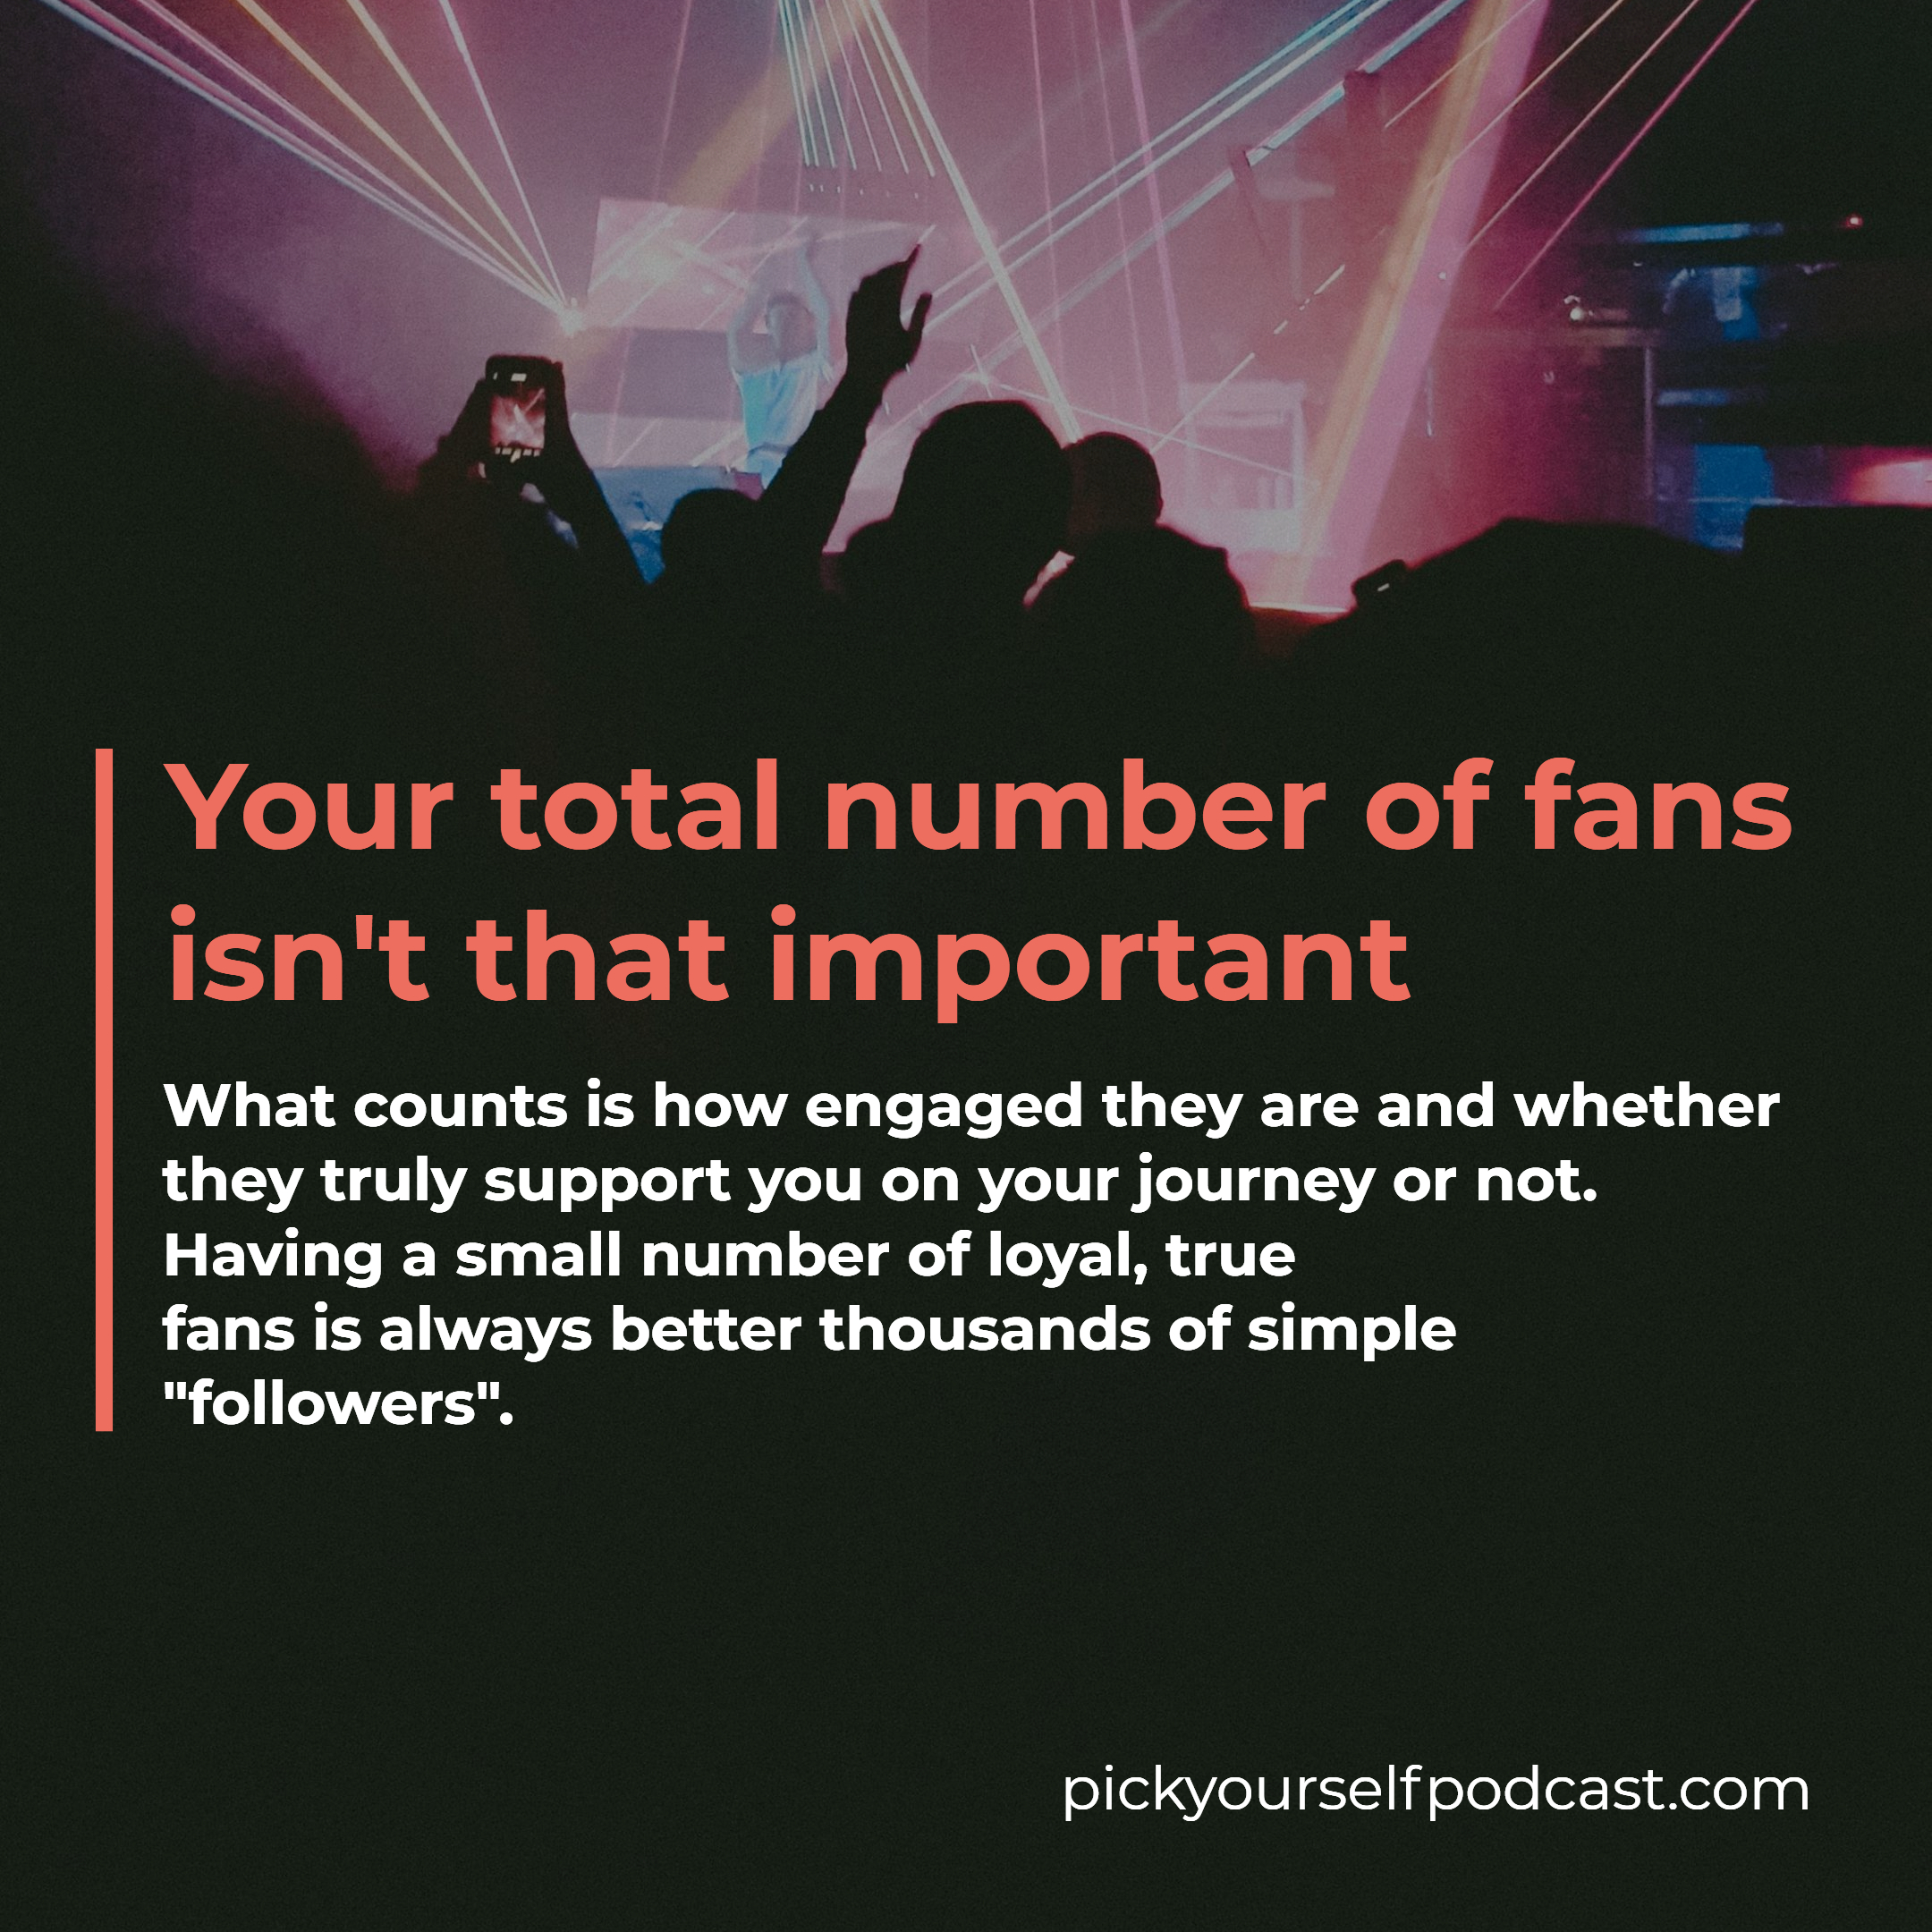 Music industry secrets: Your total number of fans isn't that important.